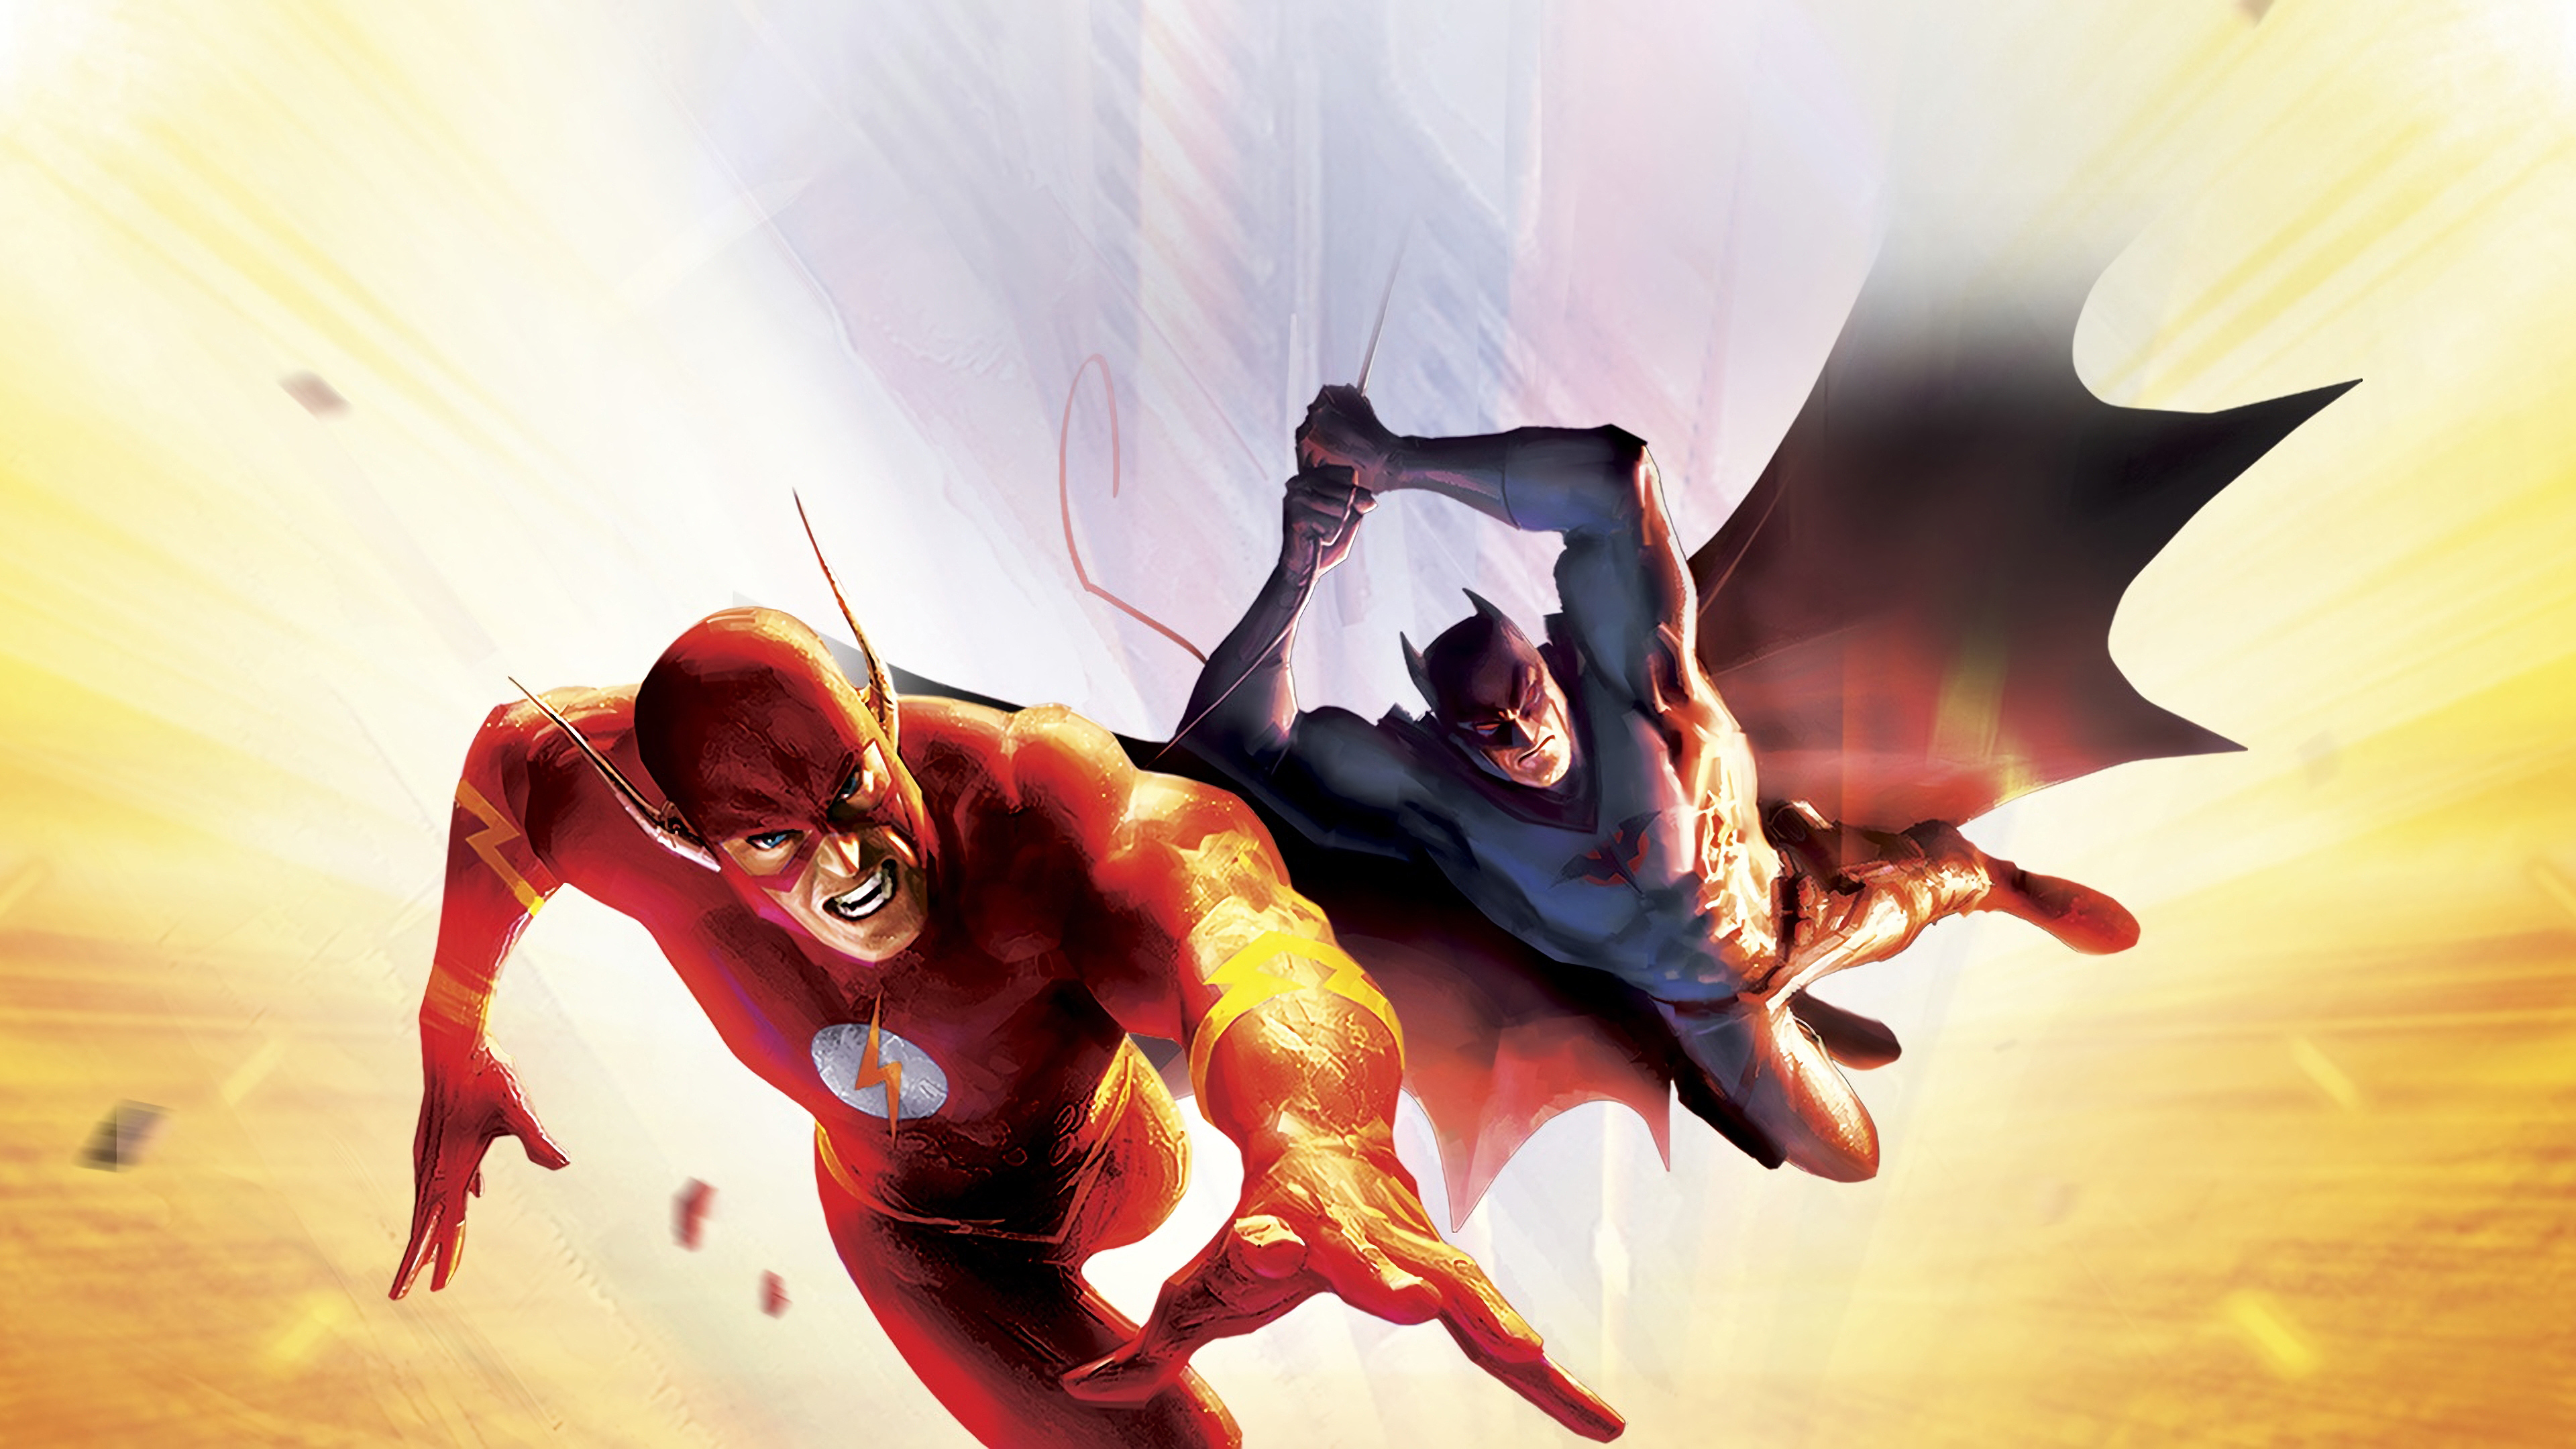 flash point 1569186524 - Flash Point - superheroes wallpapers, hd-wallpapers, flash wallpapers, batman wallpapers, 4k-wallpapers